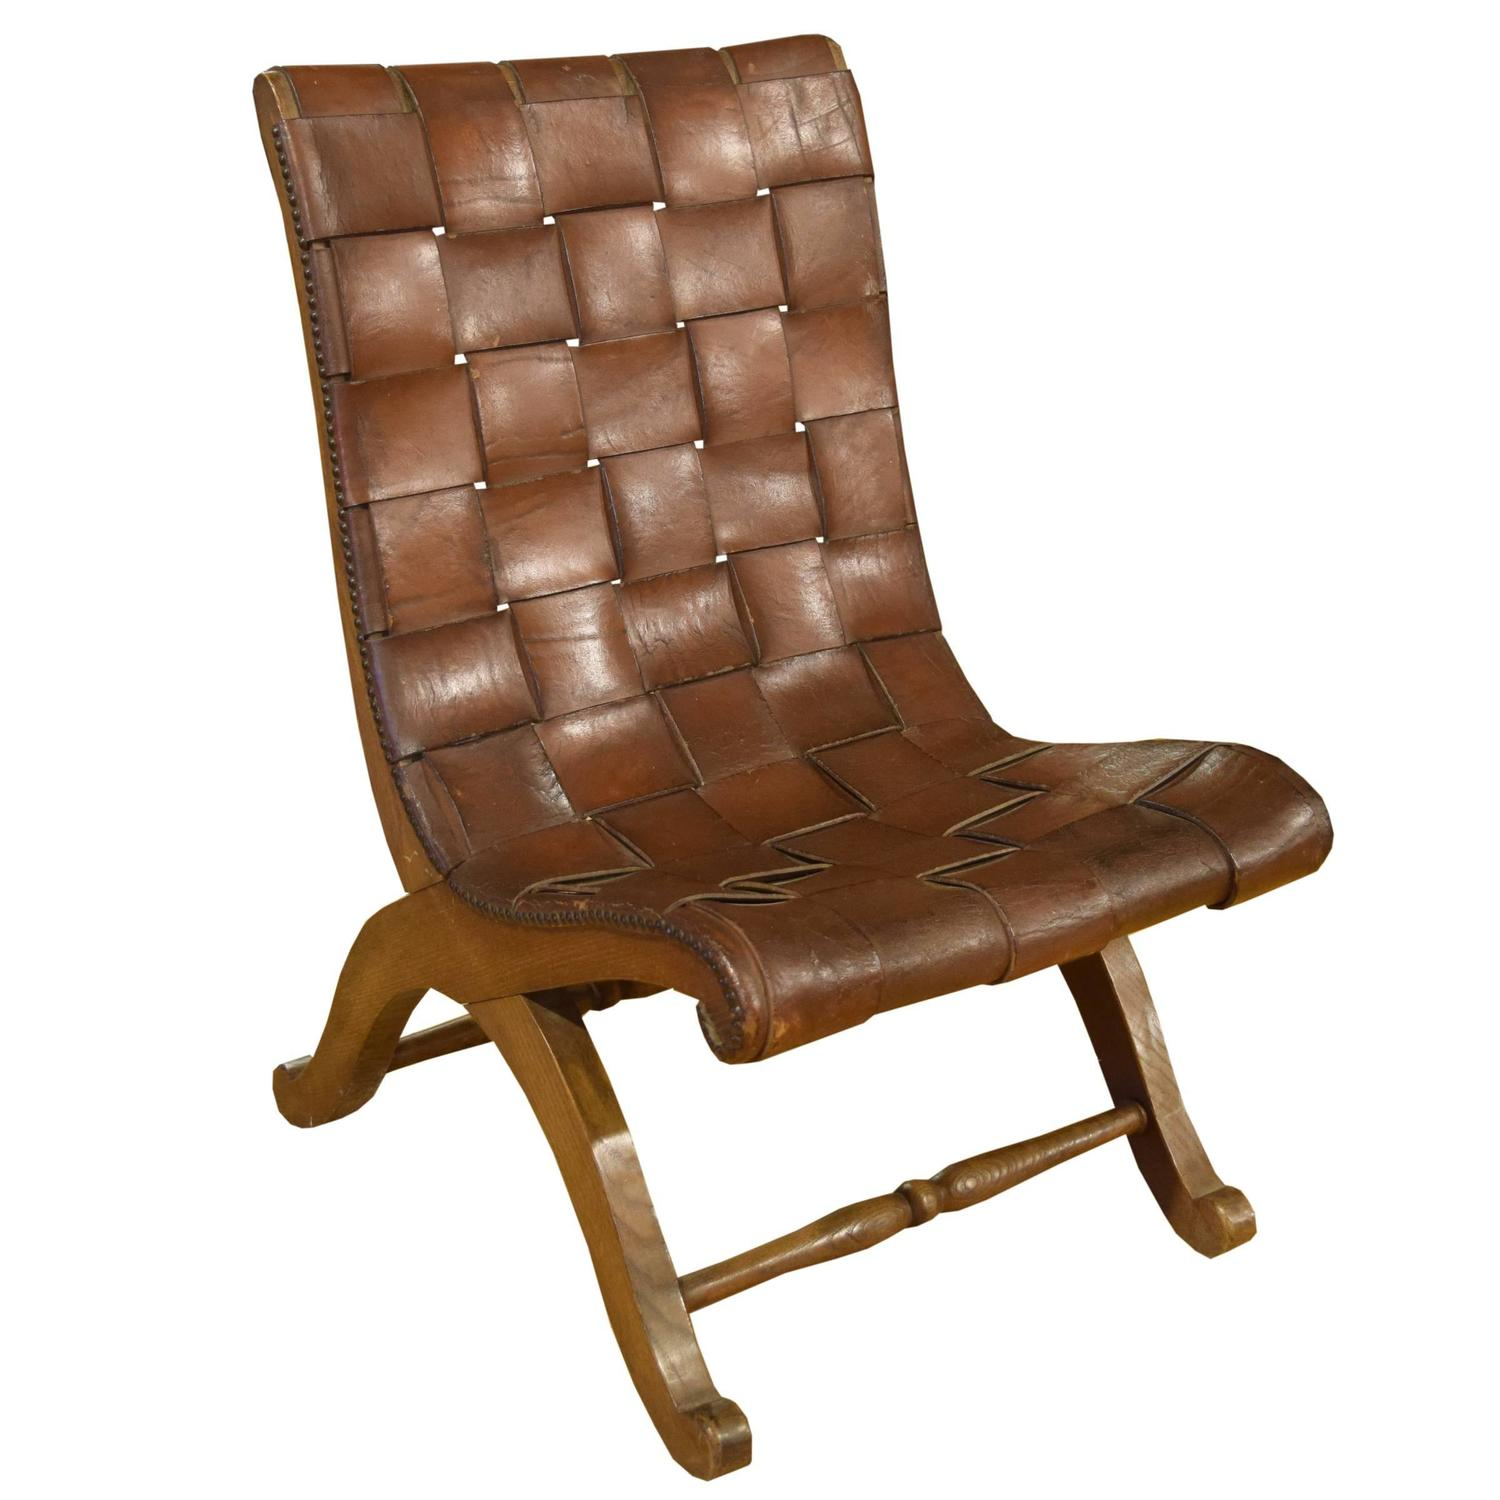 Woven Leather Chair French Woven Leather Chair For Sale At 1stdibs